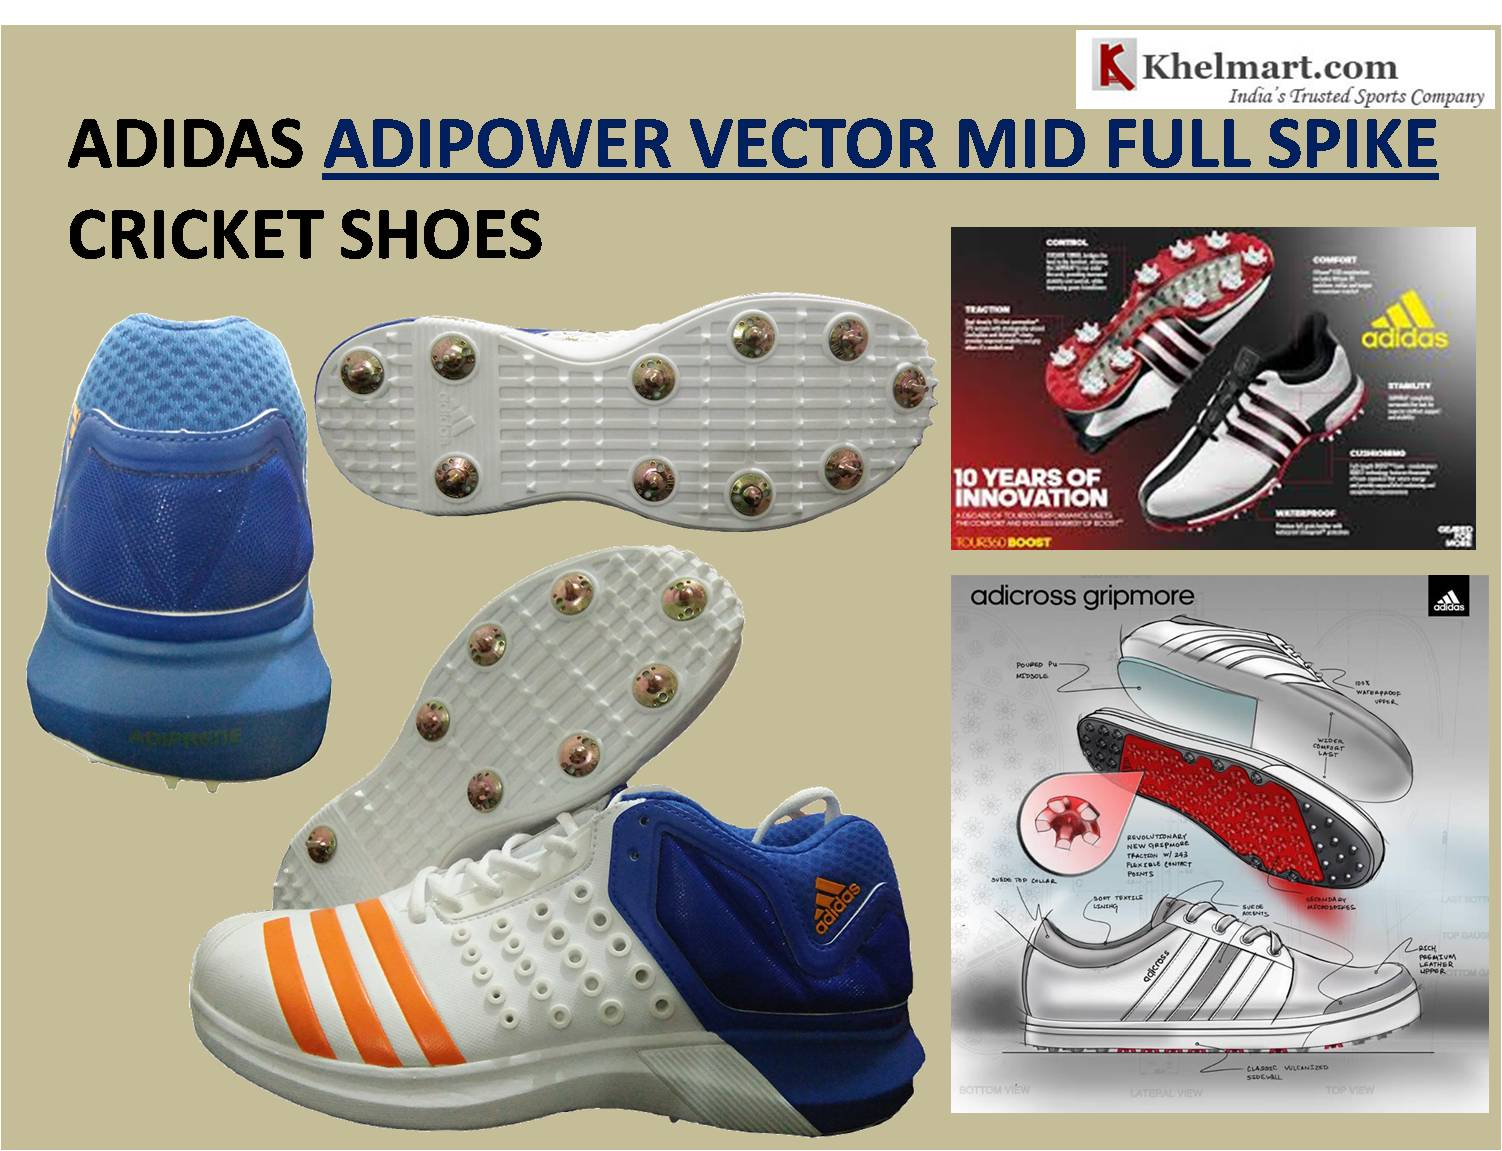 ADIDAS ADIPOWER VECTOR MID FULL SPIKE